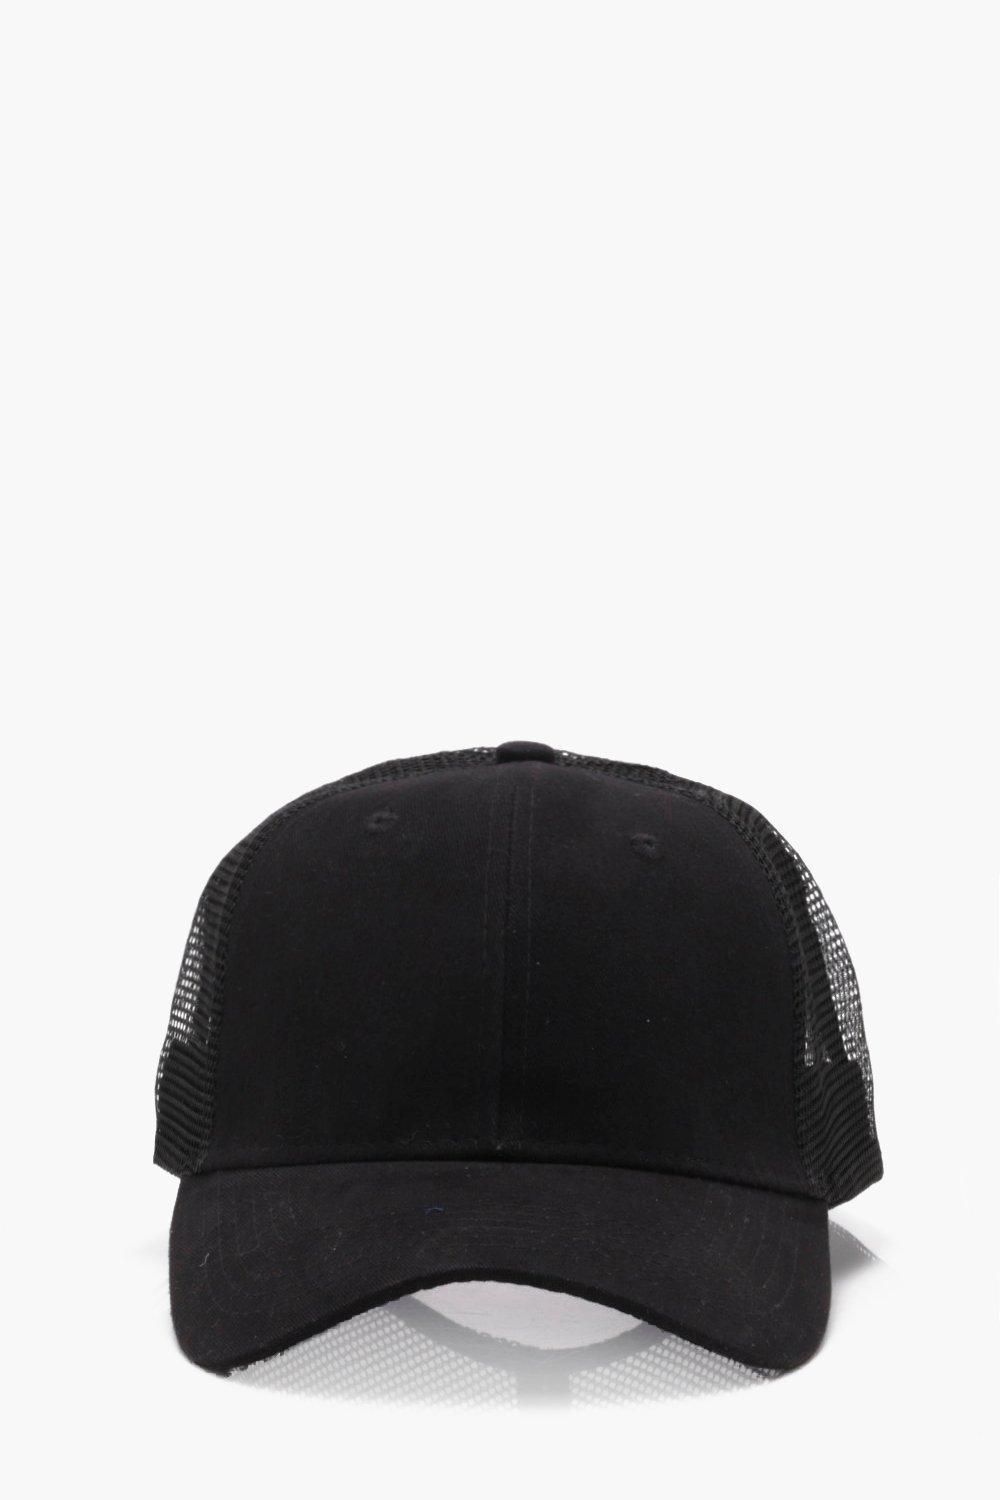 Lyst - BoohooMAN 6 Panel Cotton Front Trucker Cap in Black for Men ... ae96dc30802d